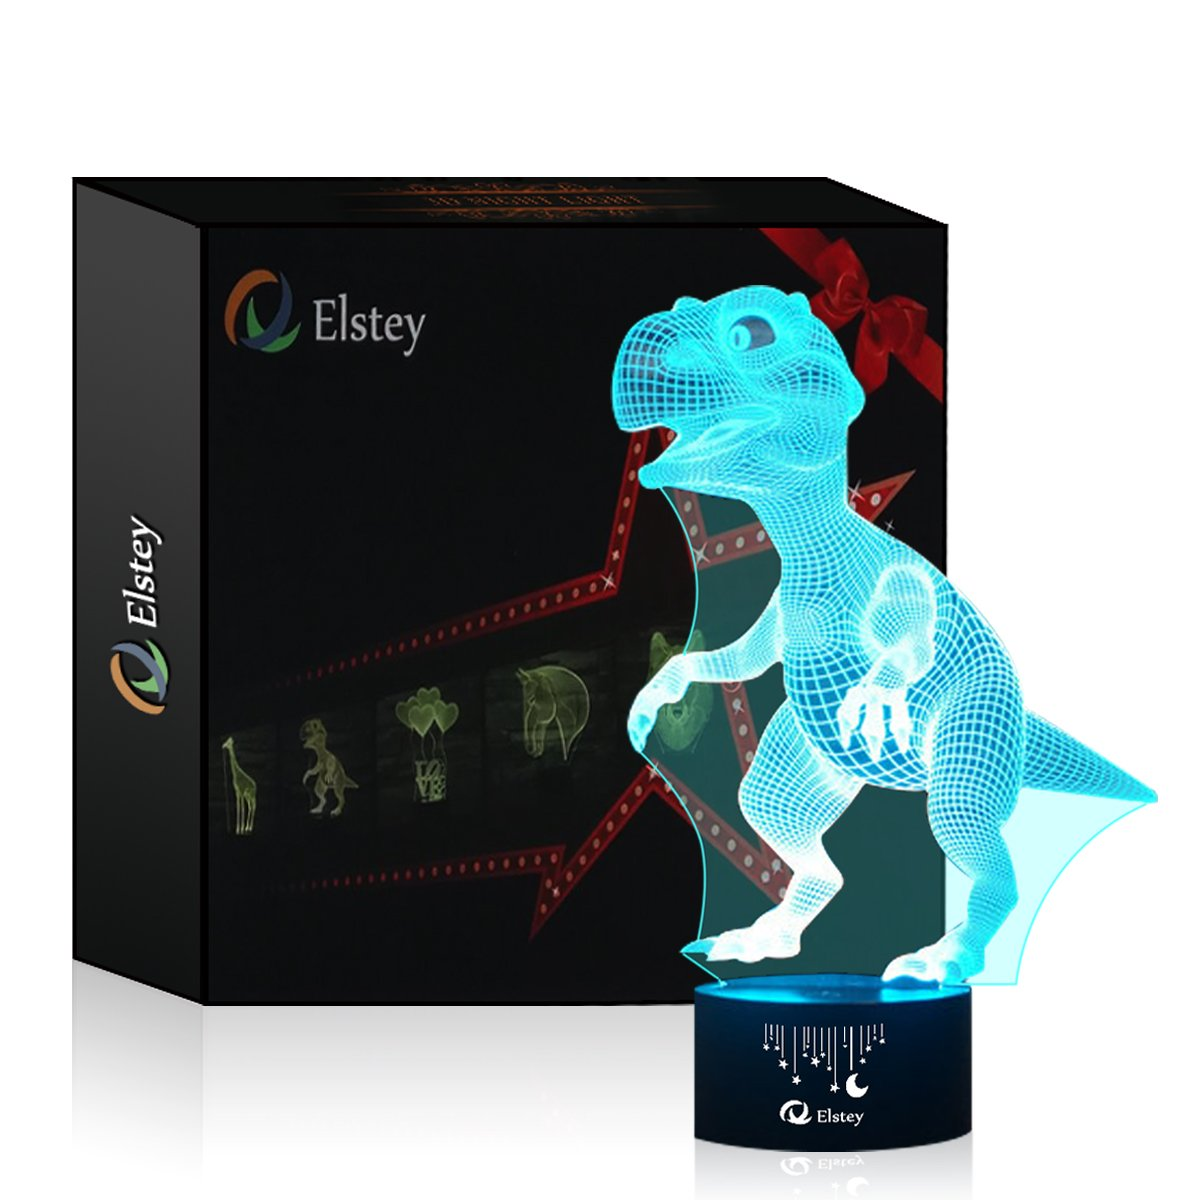 Dinosaur 3D Night Light Touch Table Desk Lamp, Elsley 7 Colors 3D Optical Illusion Lights with Acrylic Flat & ABS Base & USB Cabler for Christmas Gift by Elstey (Image #1)